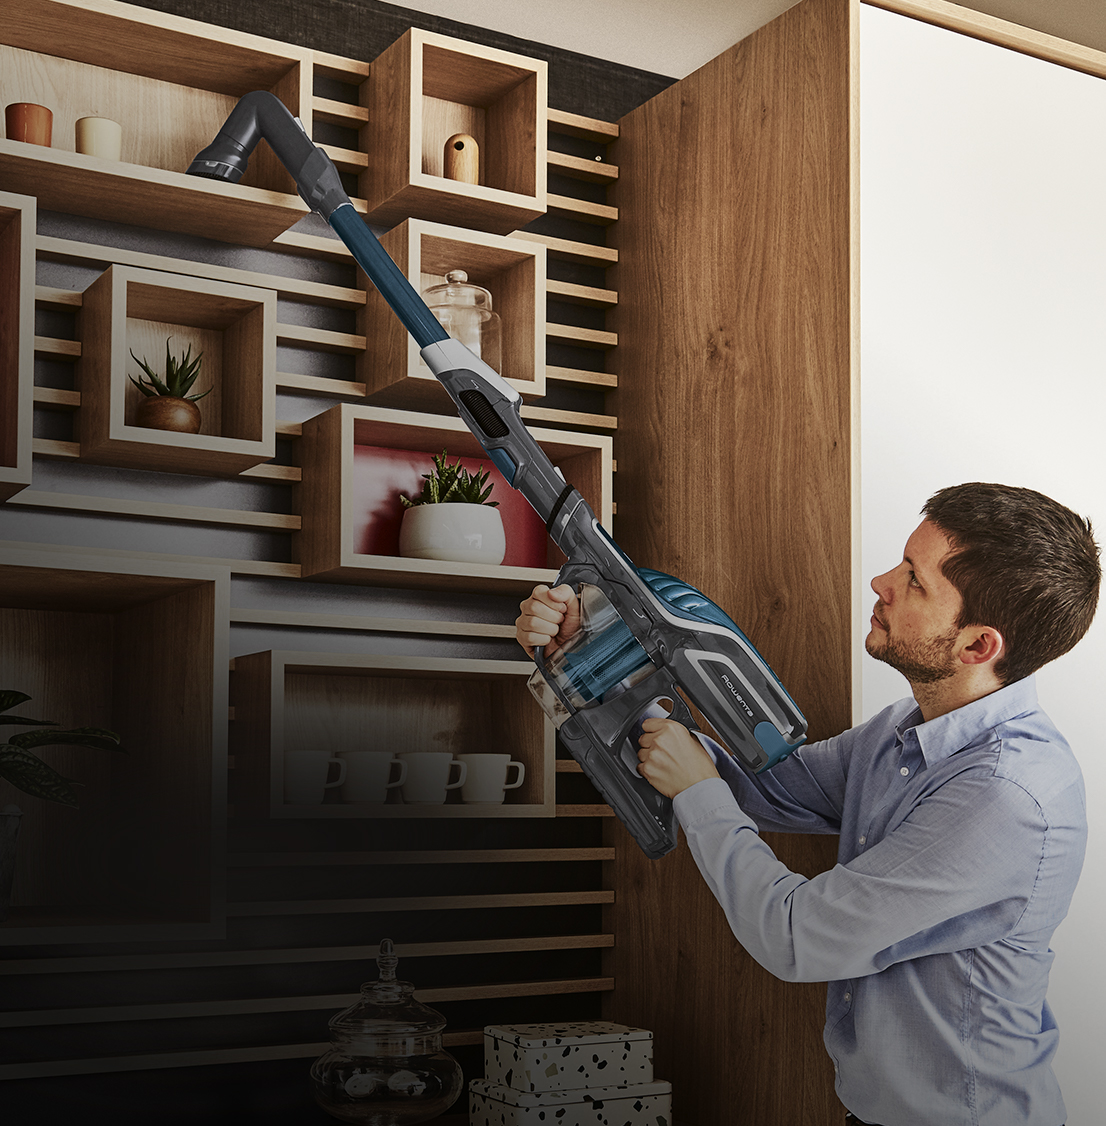 Man vacuuming dust on a furniture